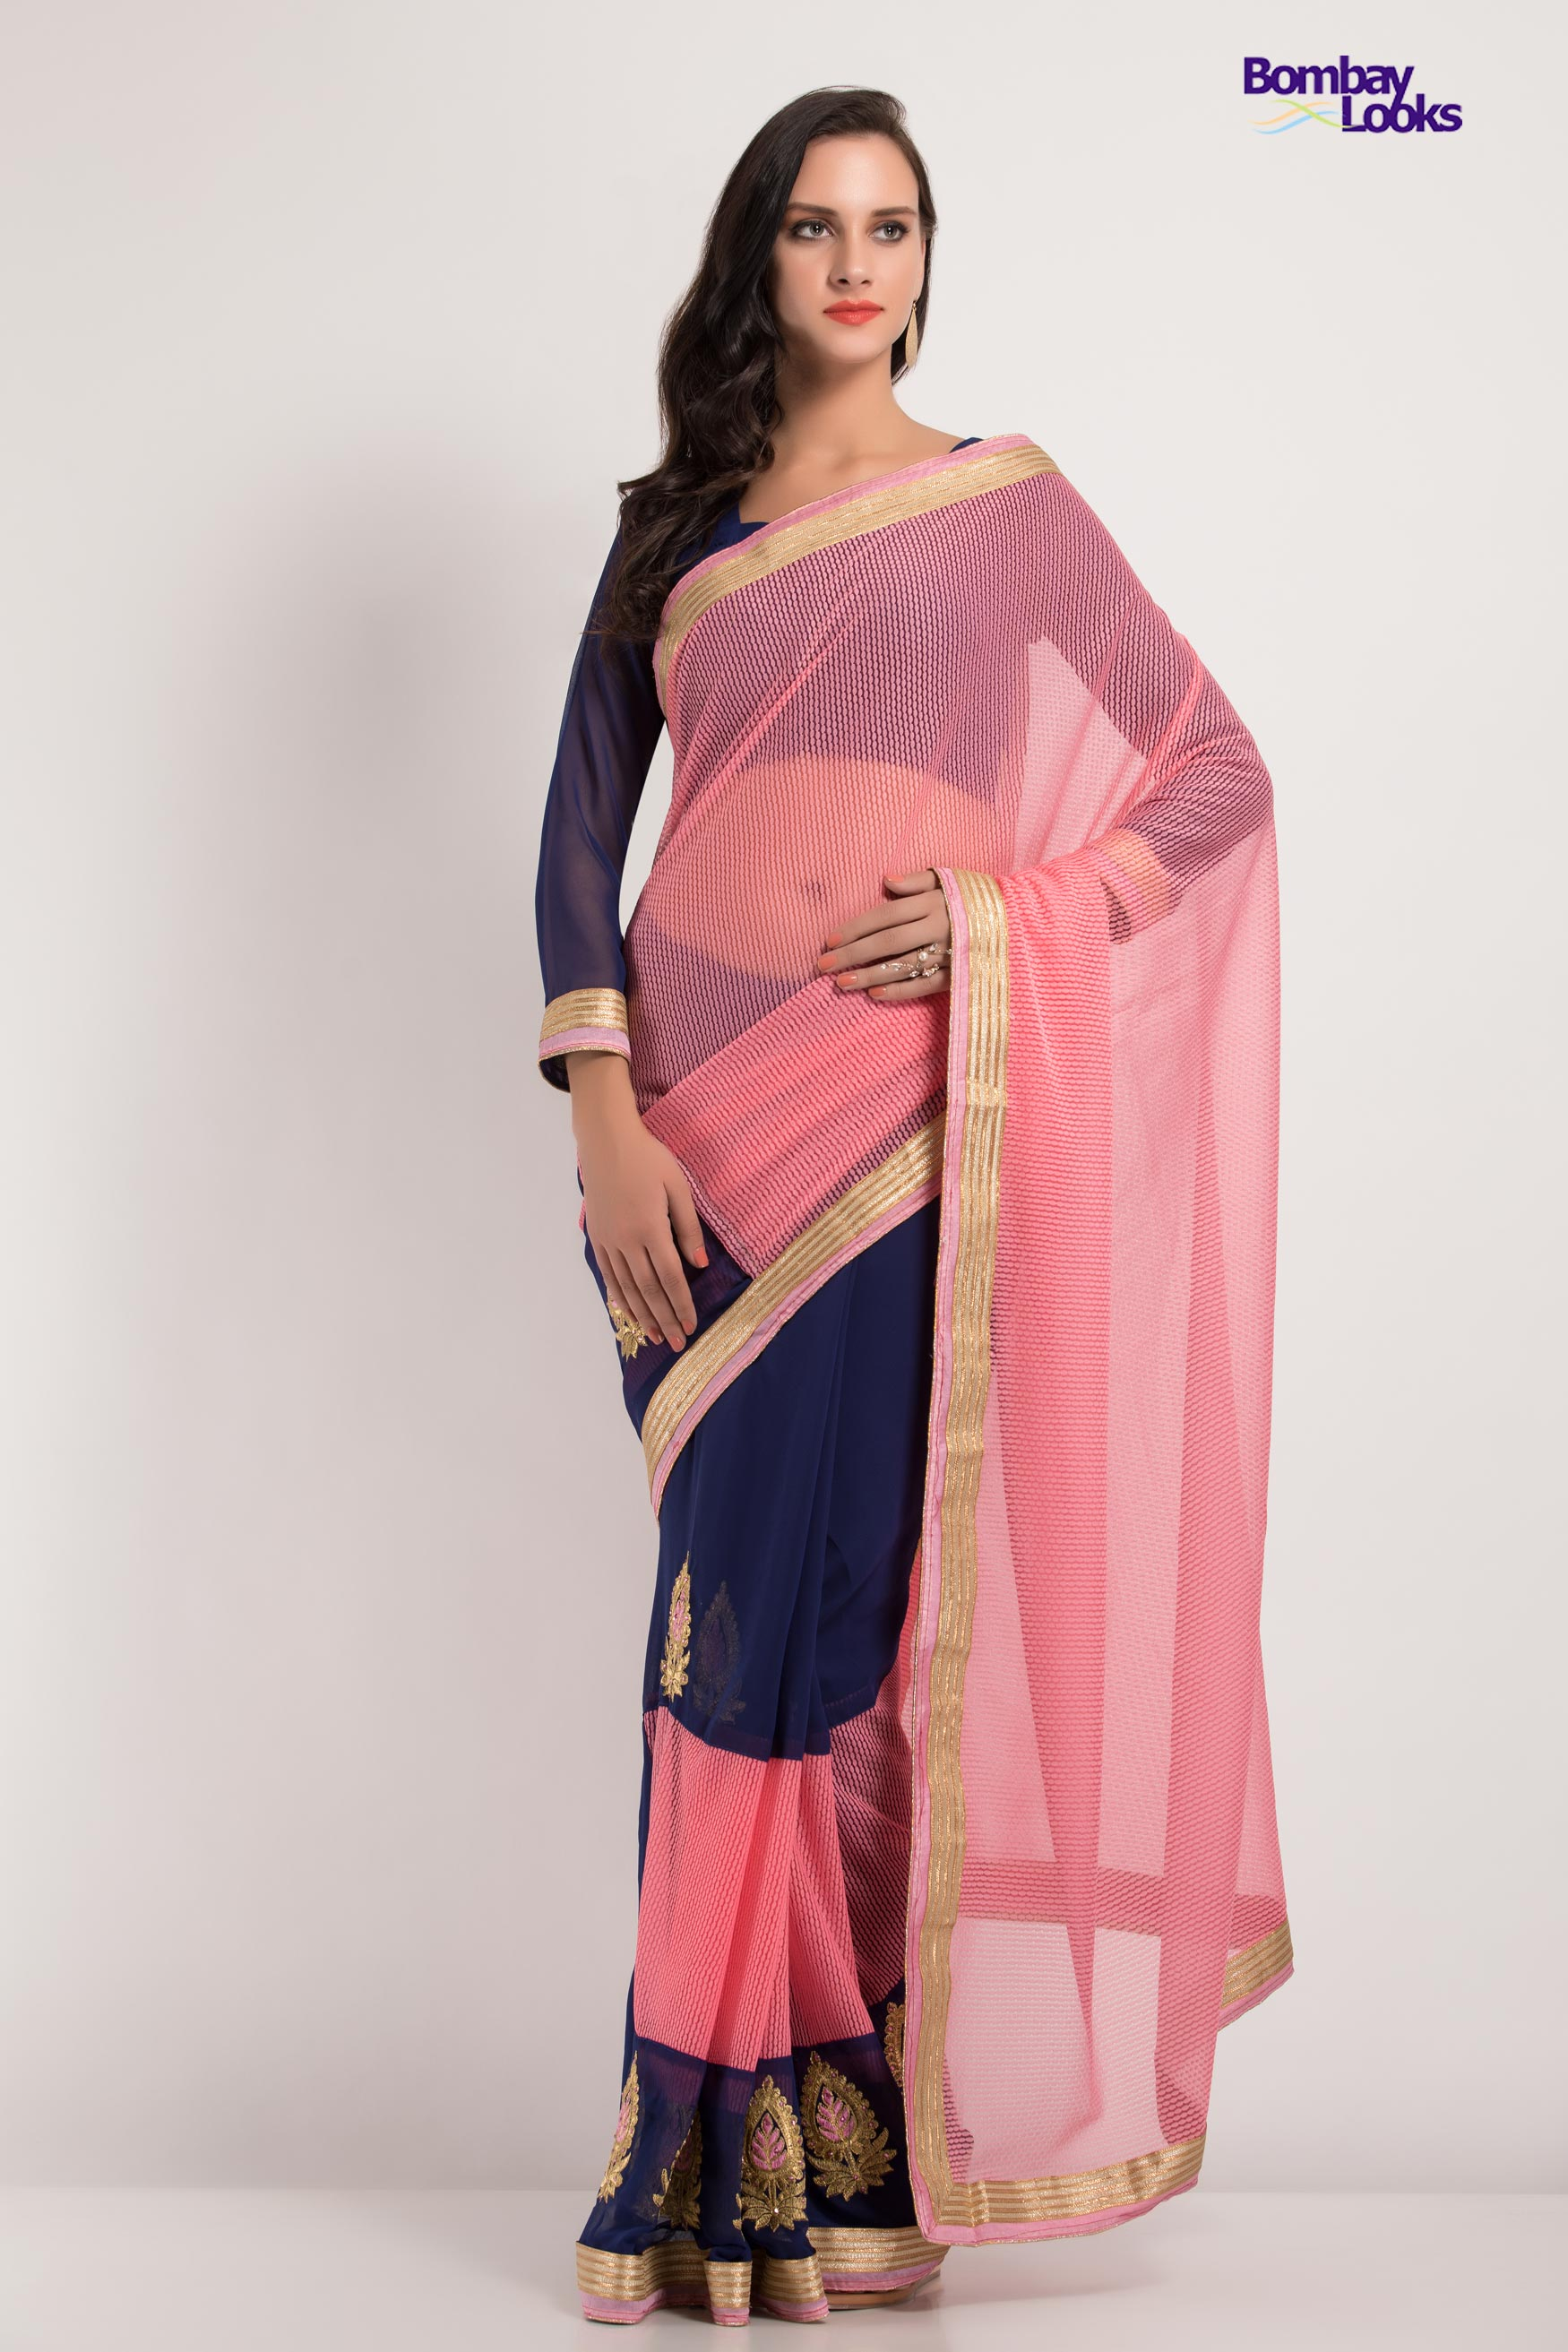 Soft dual tone saree in pink and blue with delicate golden embroidered blouse